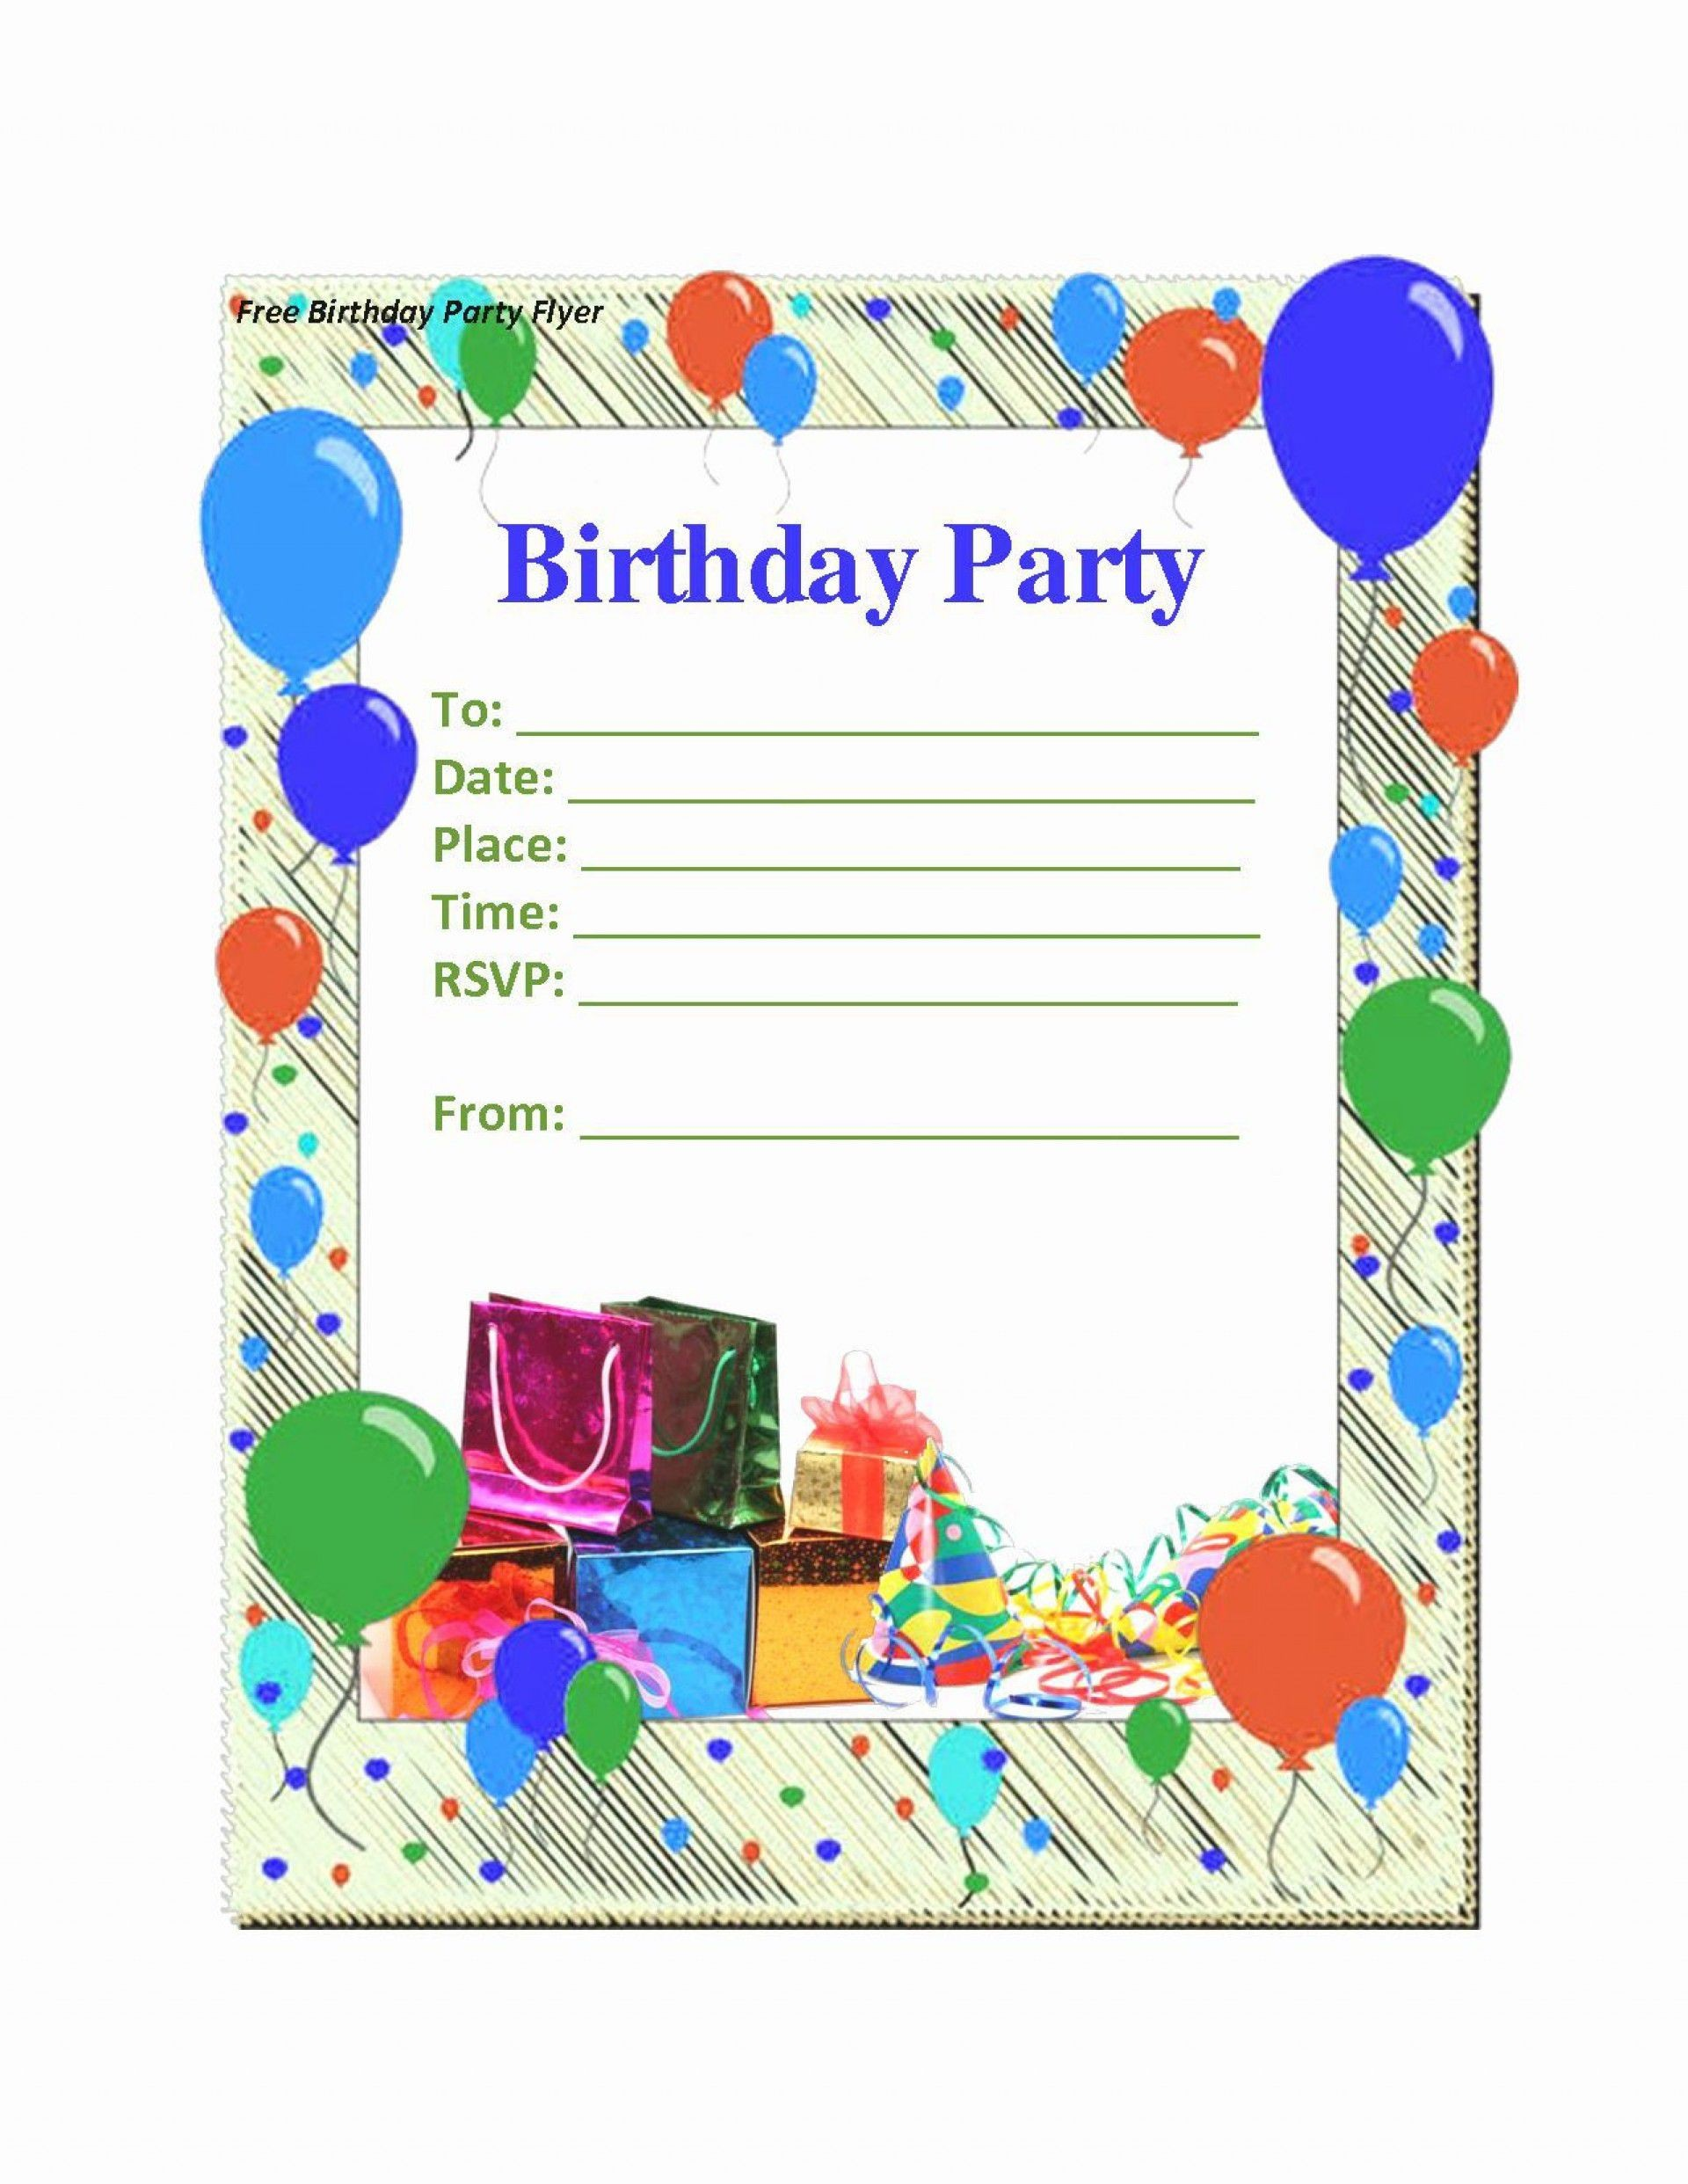 010 Archaicawful Microsoft Word Birthday Card Invitation Template Example 1920